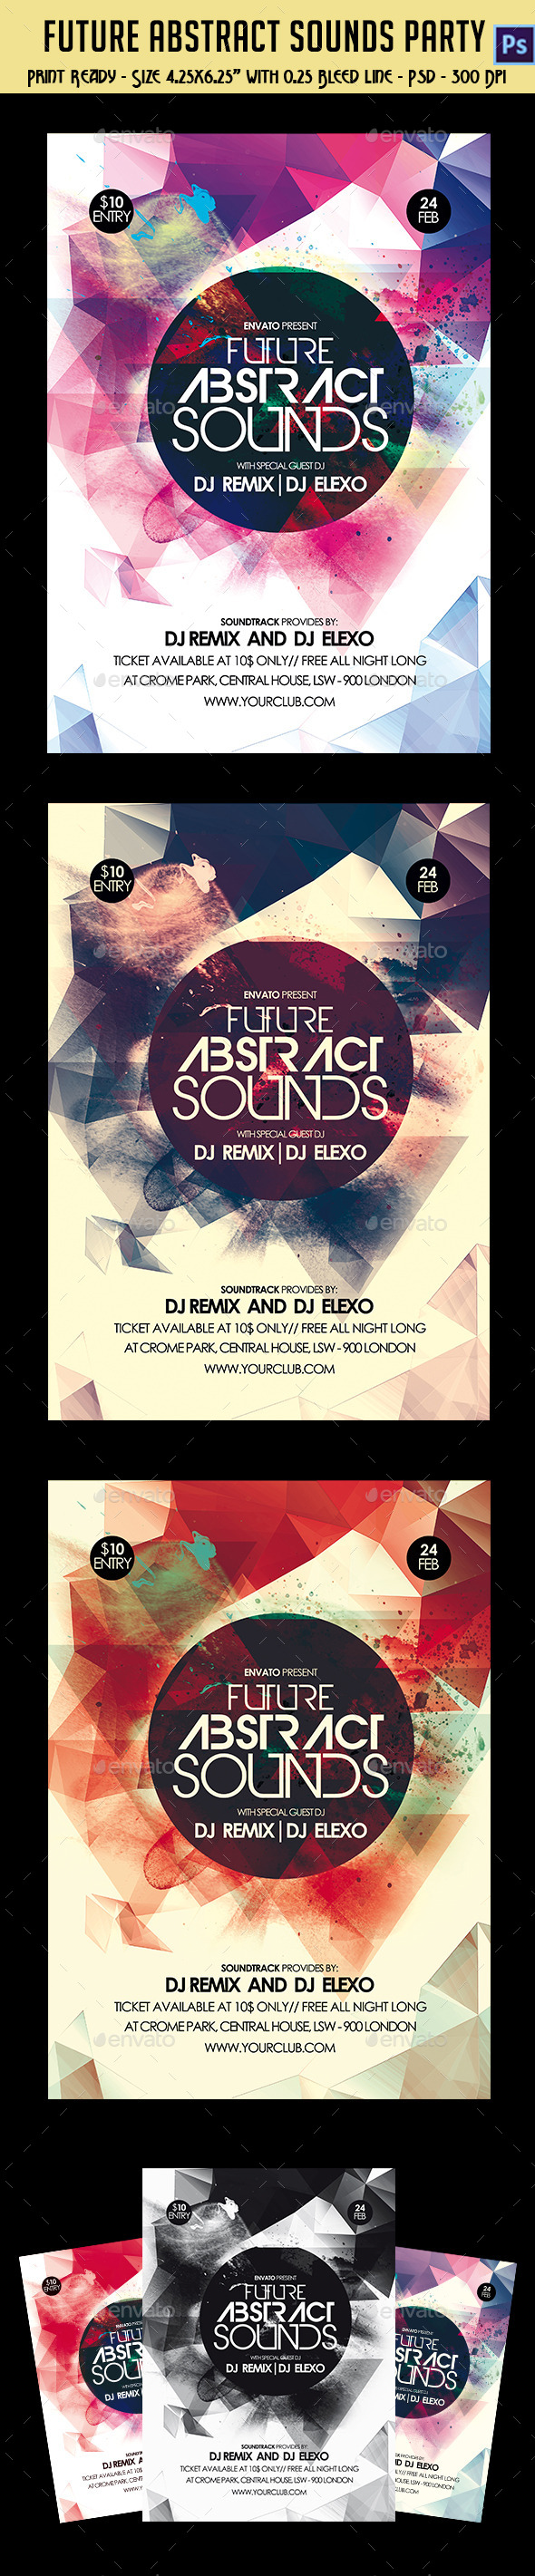 GraphicRiver Future Abstract Sounds Party Flyer 10400991